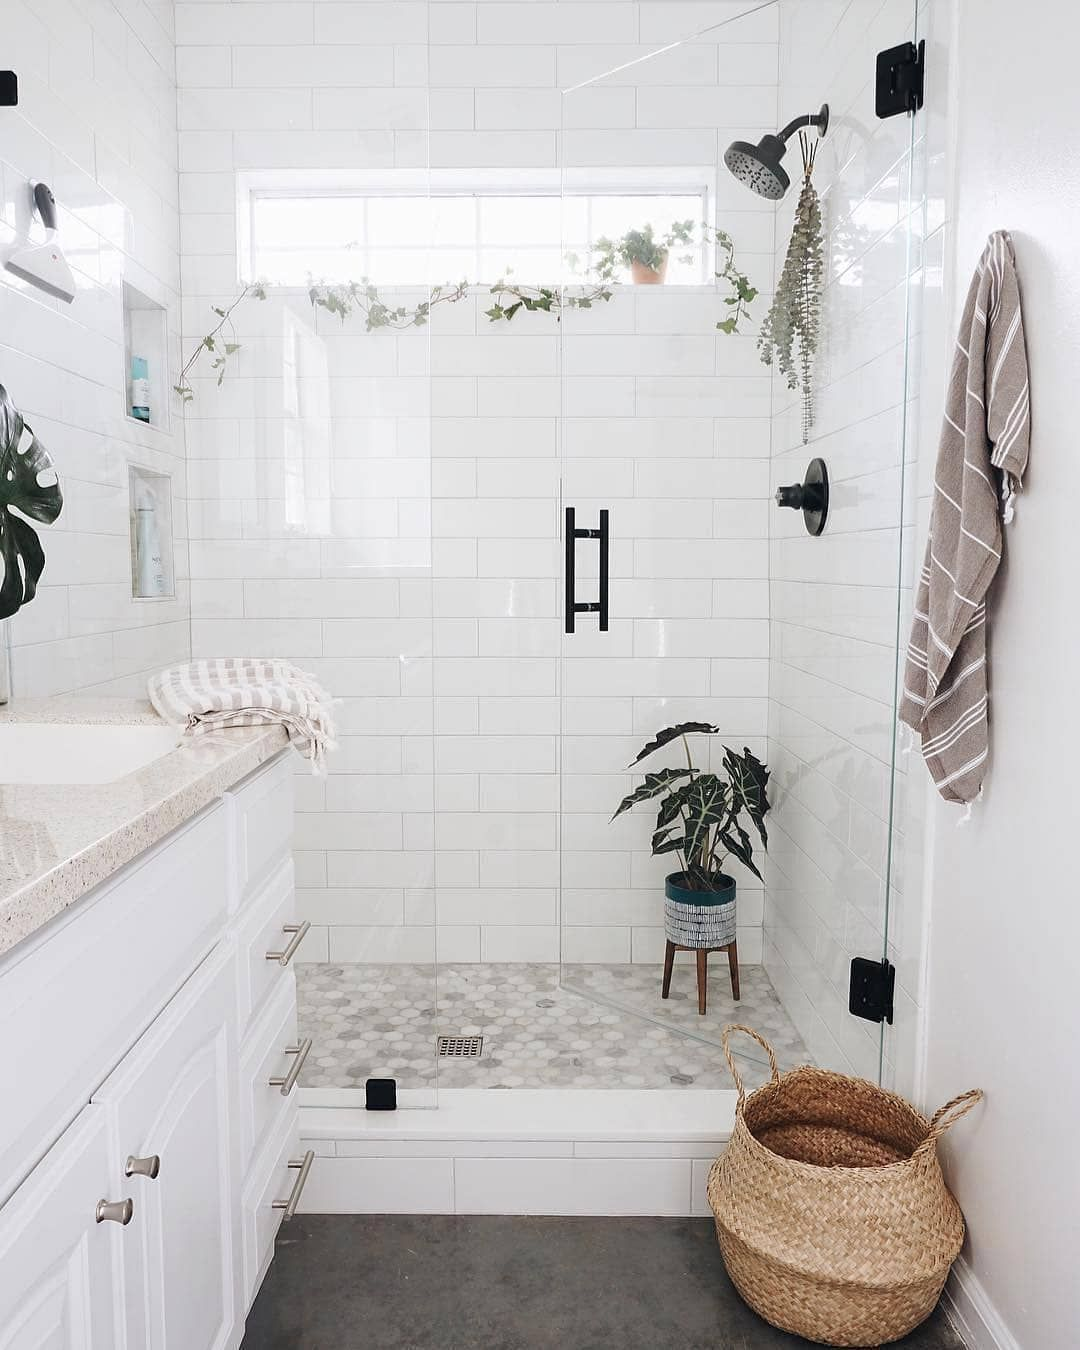 Serie 7 On Instagram Neutral Tones In The Bathroom The White Color Does Not Go Out Of Fashion And All White Bathroom White Bathroom Bathroom Inspiration